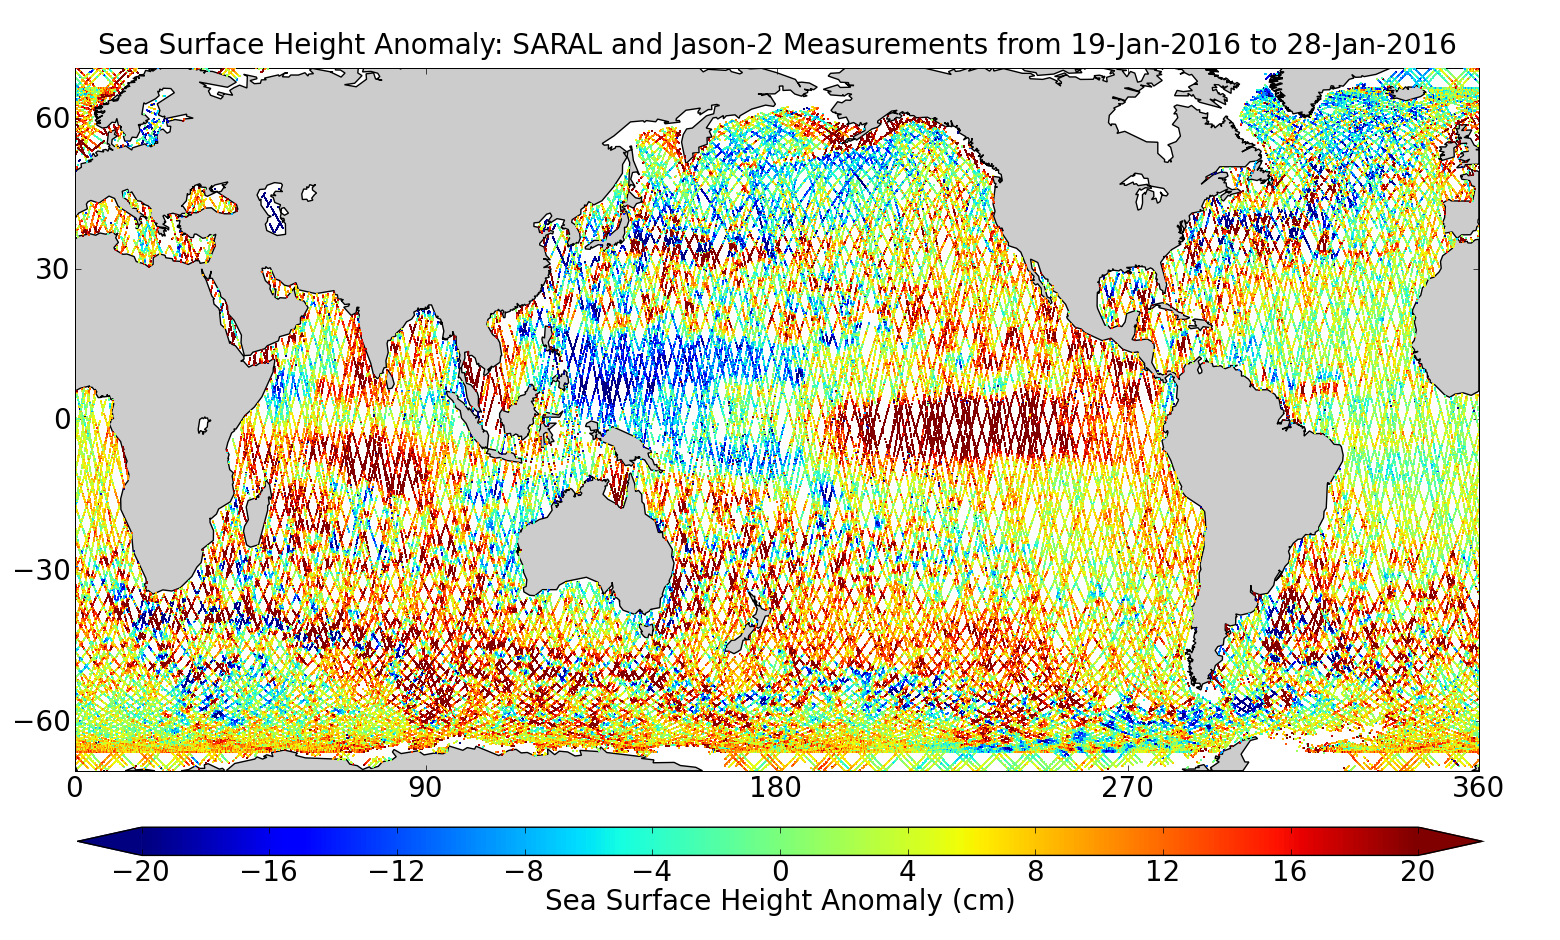 Sea Surface Height Anomaly: SARAL and Jason-2 Measurements from 19-Jan-2016 to 28-Jan-2016